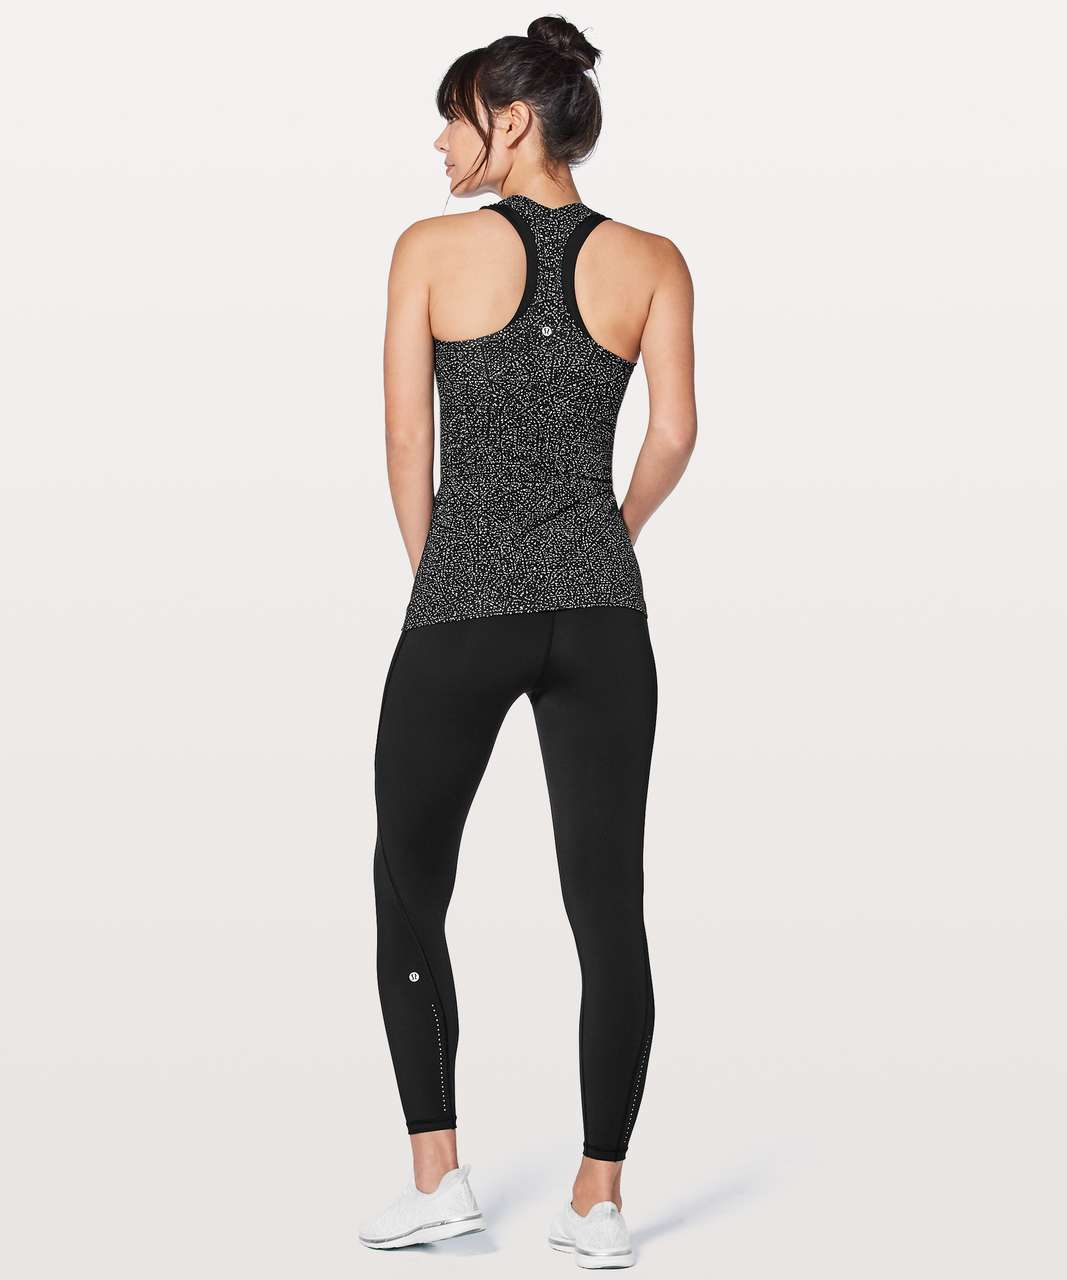 Lululemon Cool Racerback II - Night View White Black